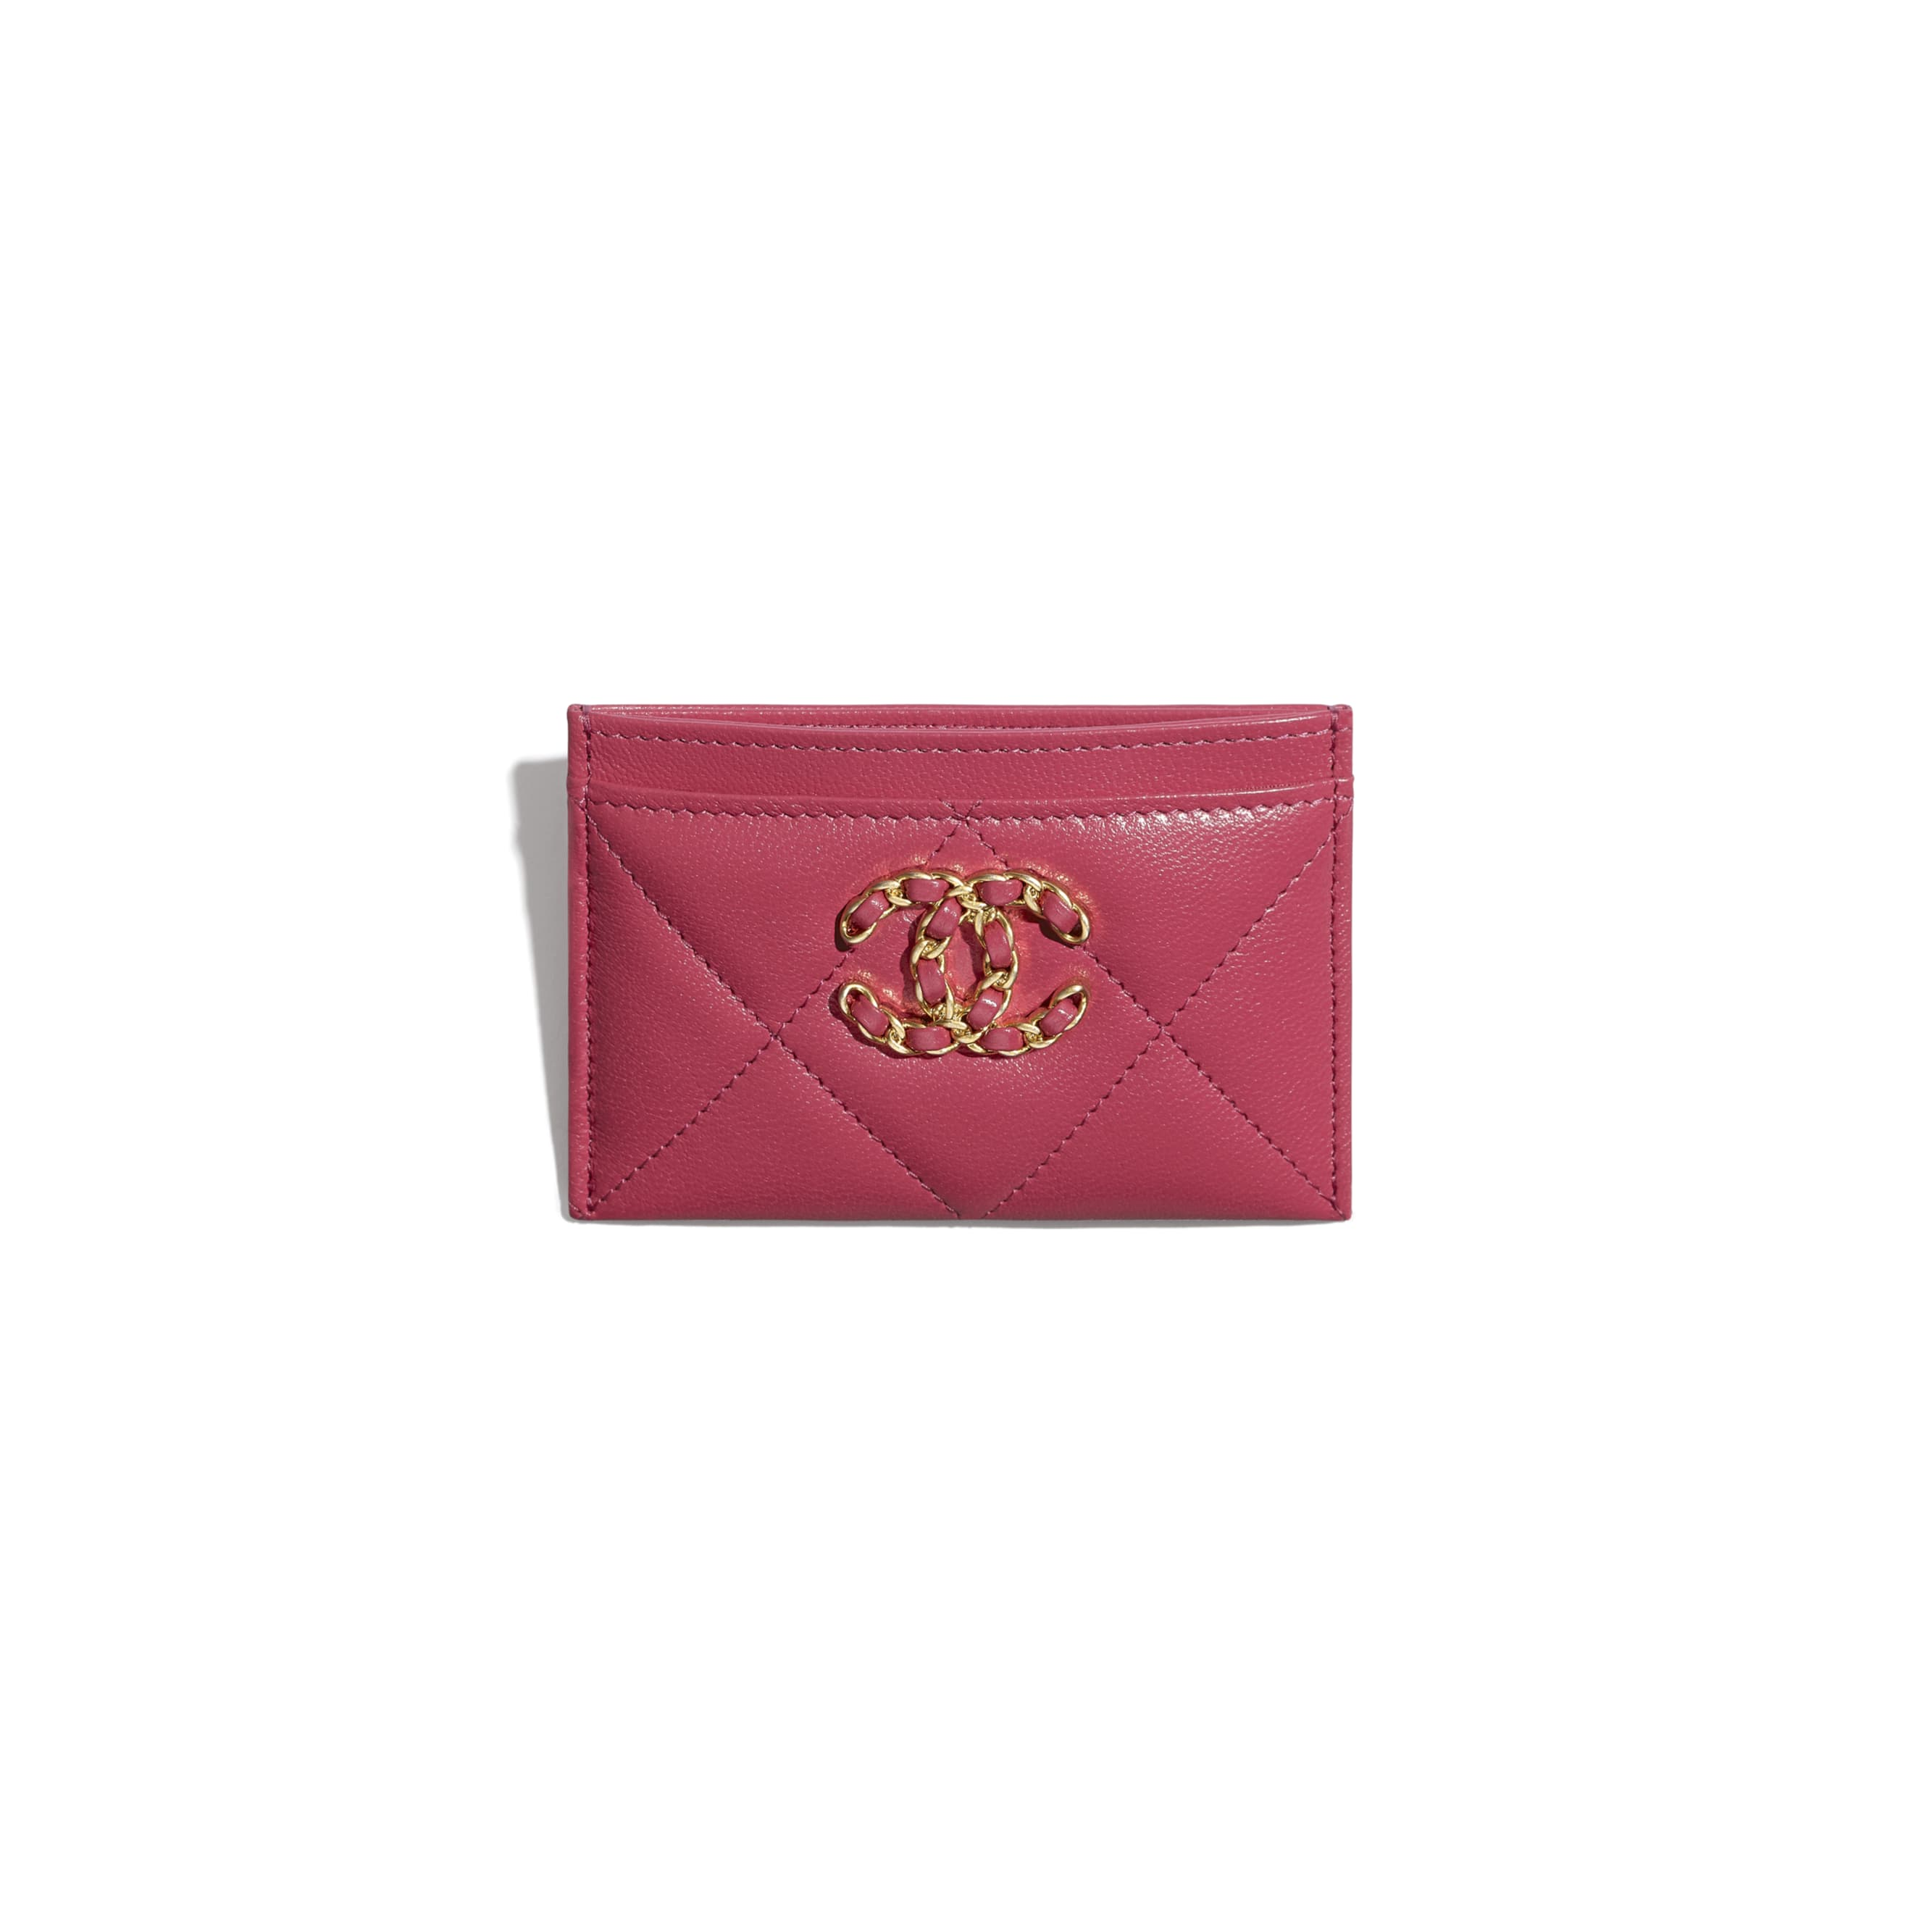 CHANEL 19 Card Holder - Dark Pink - Lambskin, Gold-Tone, Silver-Tone & Ruthenium-Finish Metal - CHANEL - Other view - see standard sized version